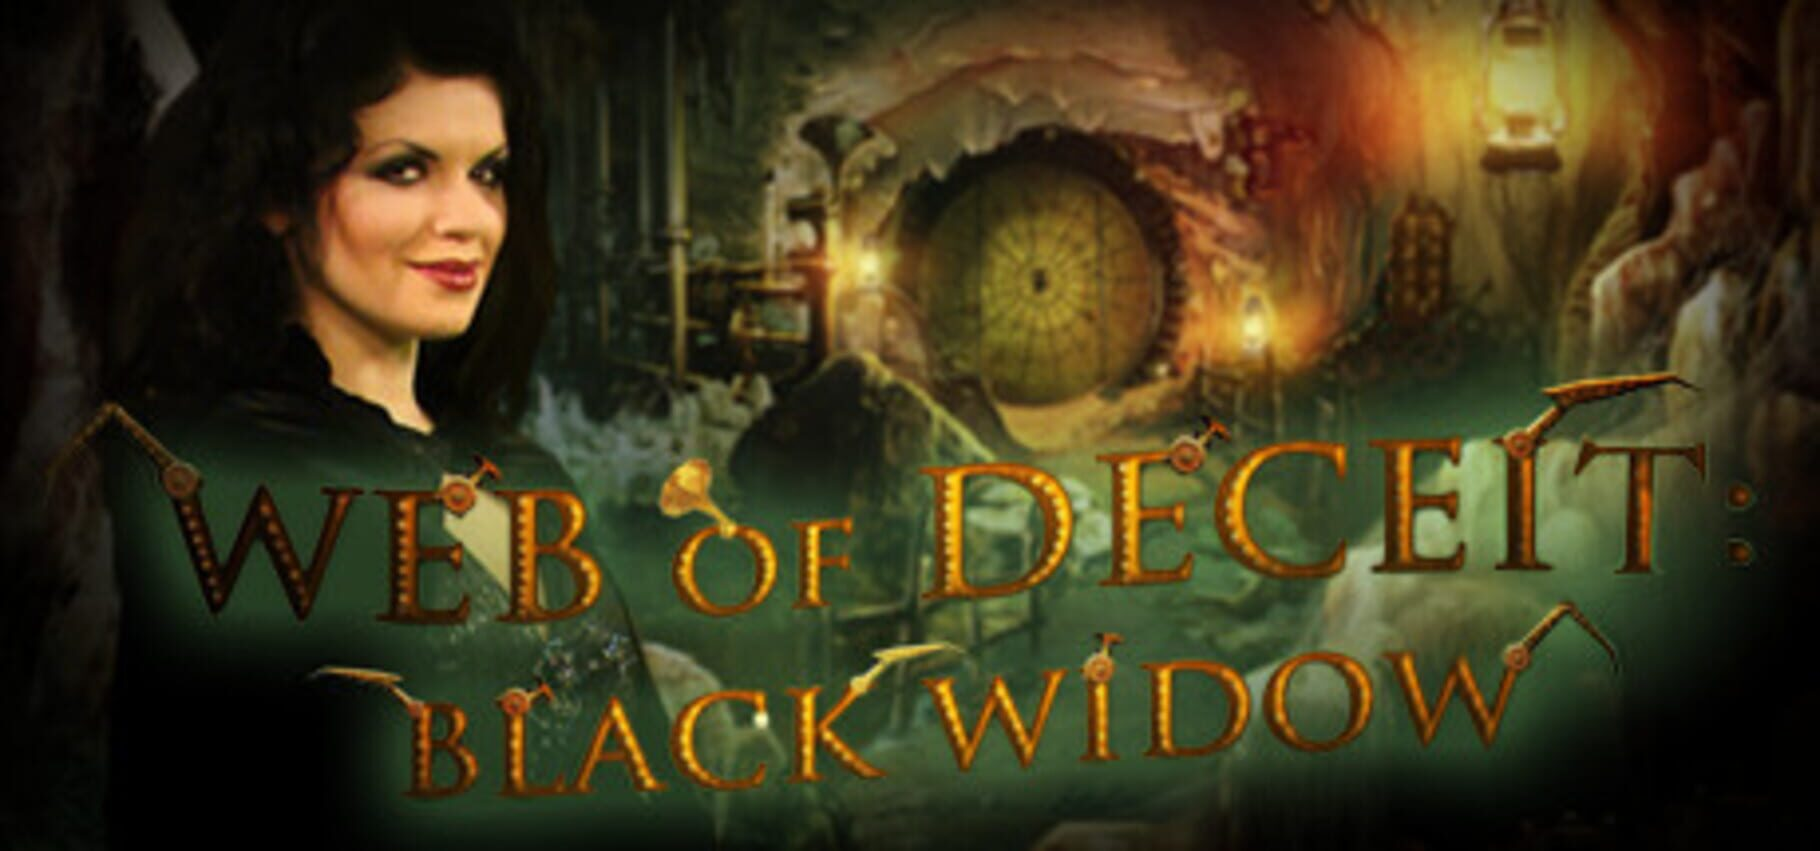 buy Web of Deceit: Black Widow cd key for xbox platform